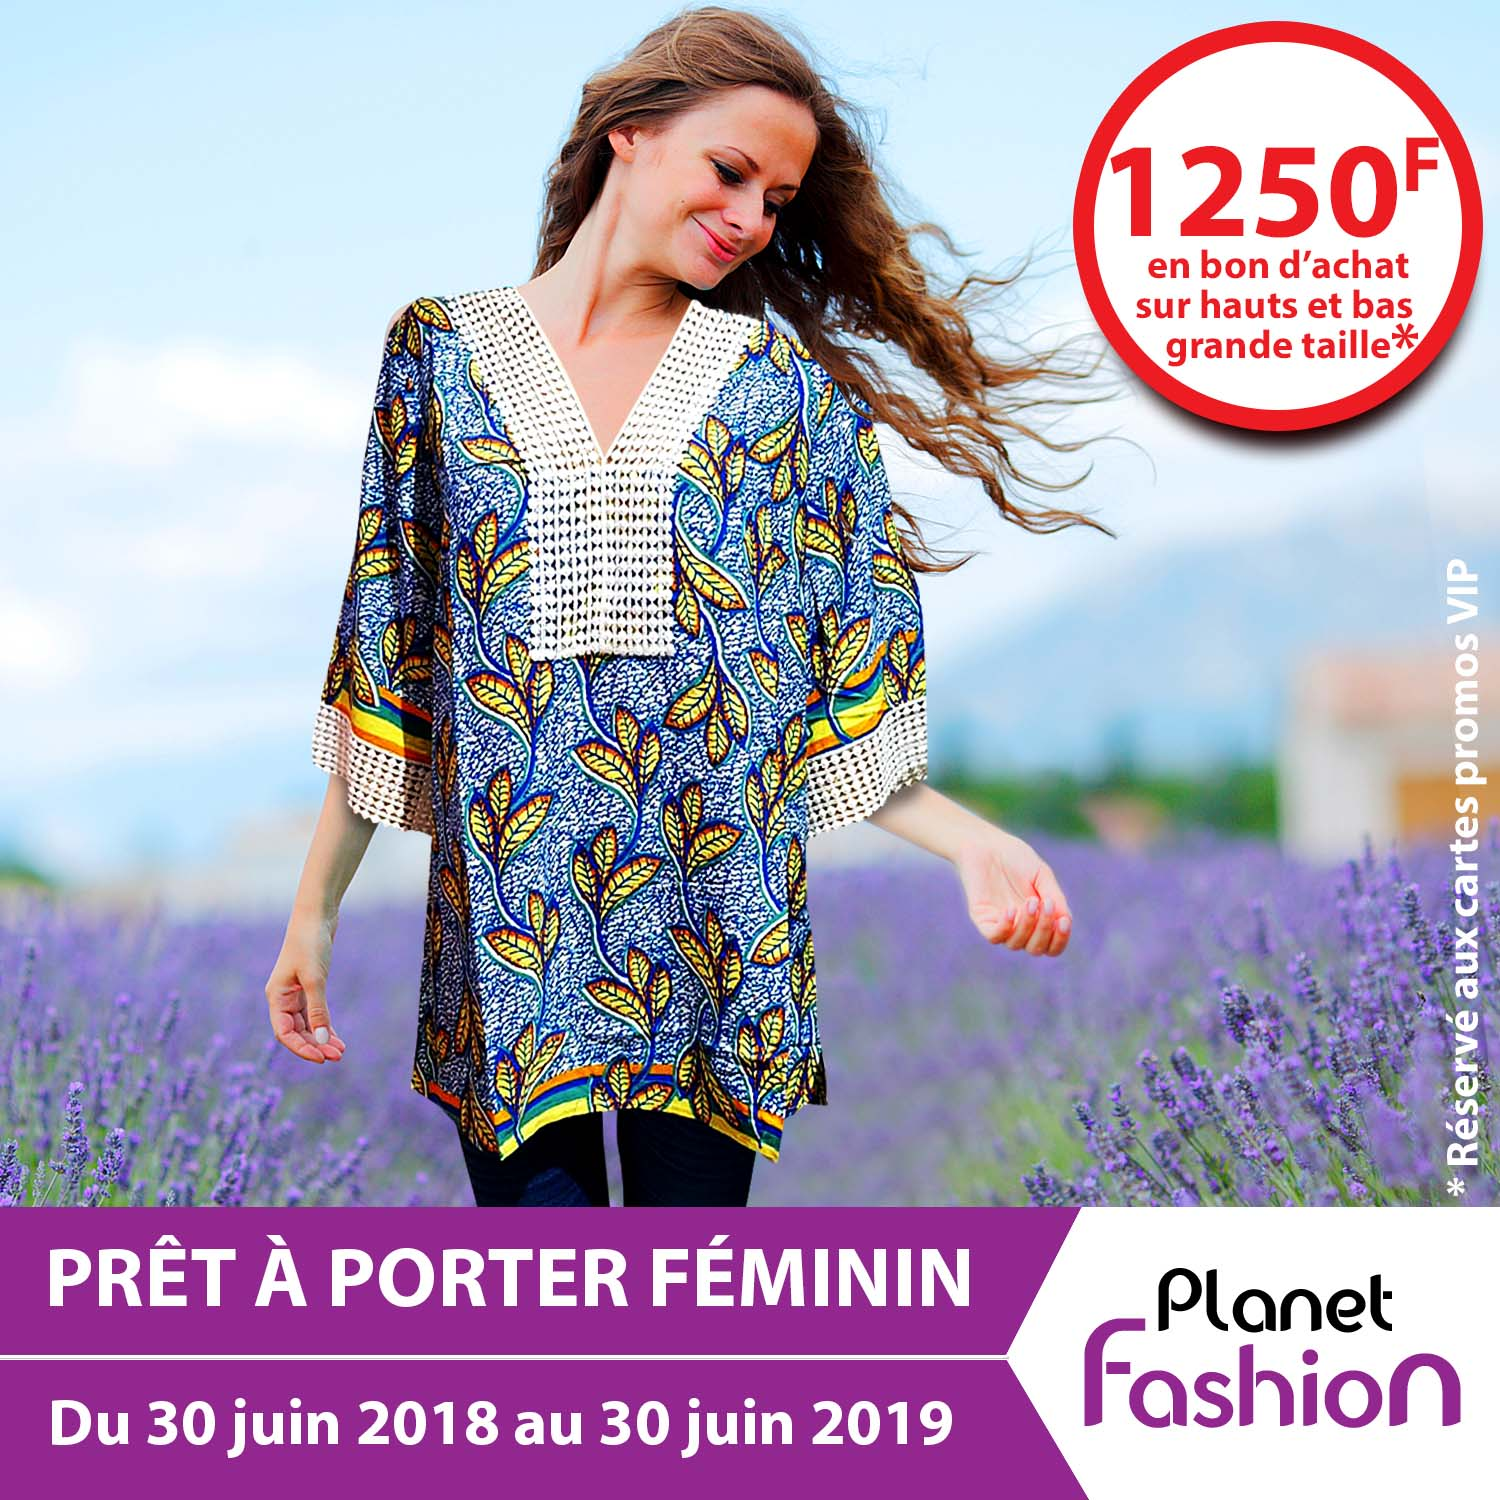 planet-fashion-boutique-promotions-noumea-nouvelle-caledonie.nc.jpg